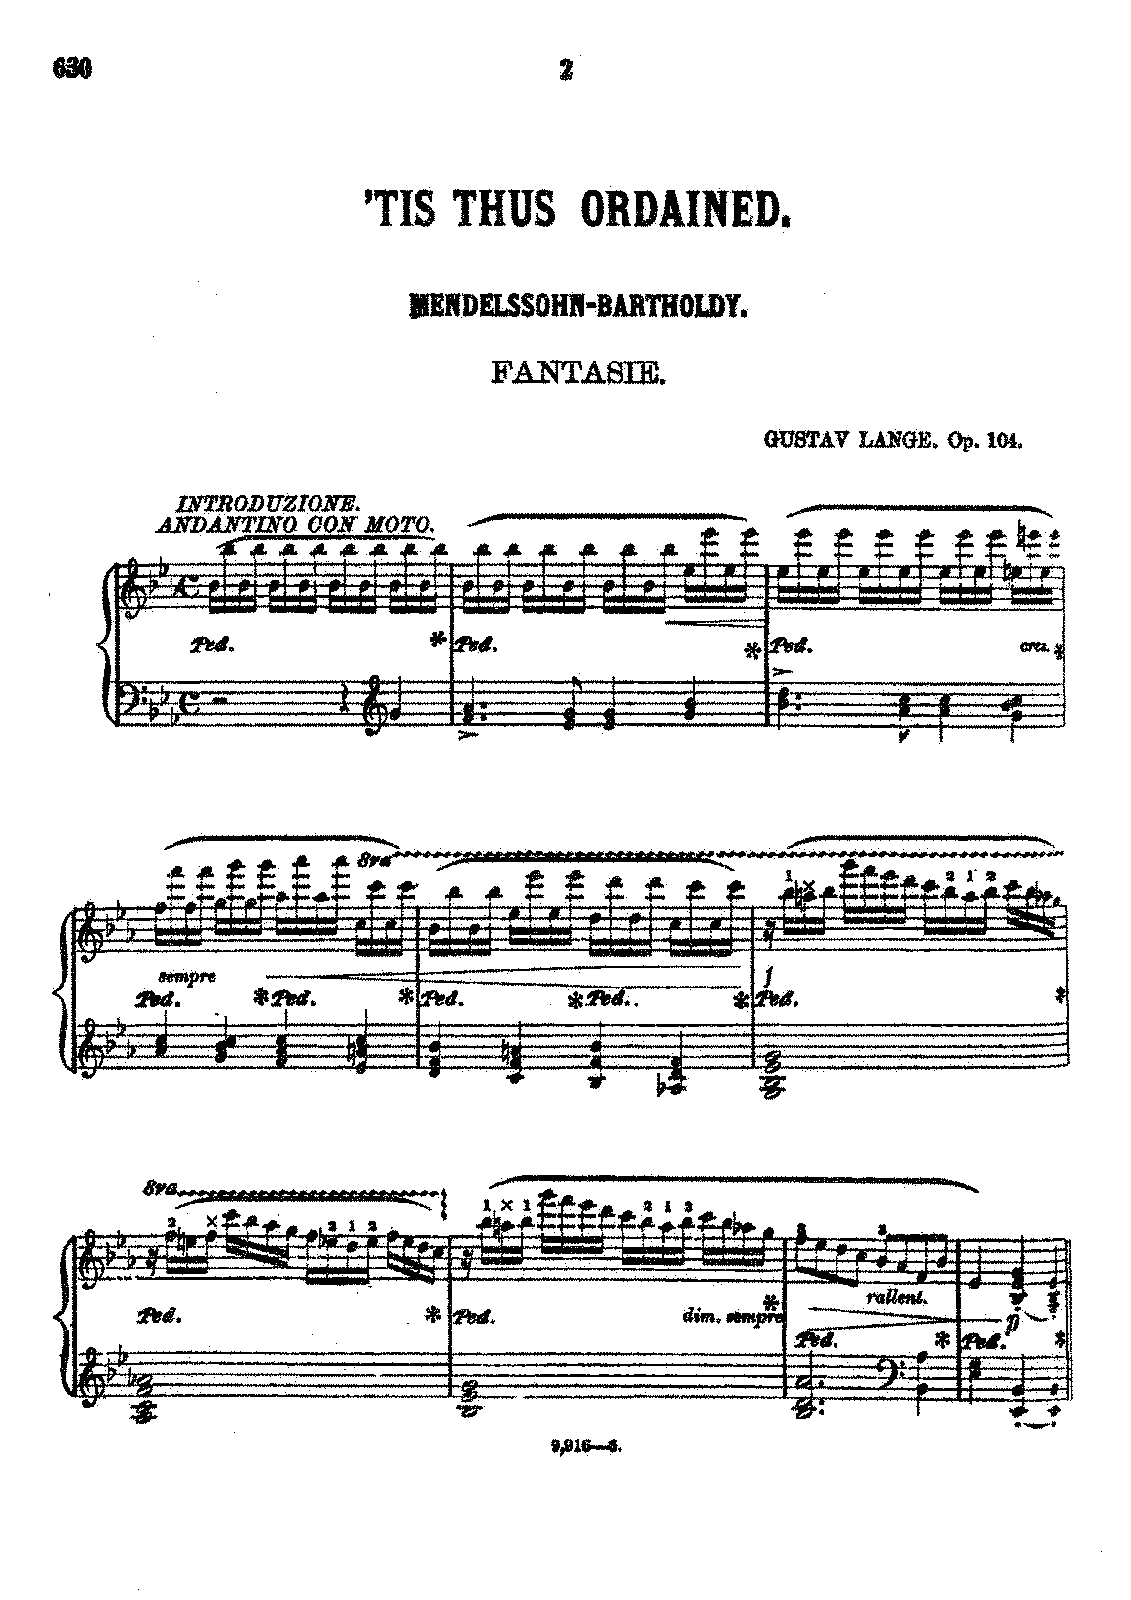 PMLP346563-Lange - 104 Fantasie on Mendelssohn's 'Tis thus ordained op 104 - Extracted from Cluster of Gems - Oliver Ditson - 1877.pdf